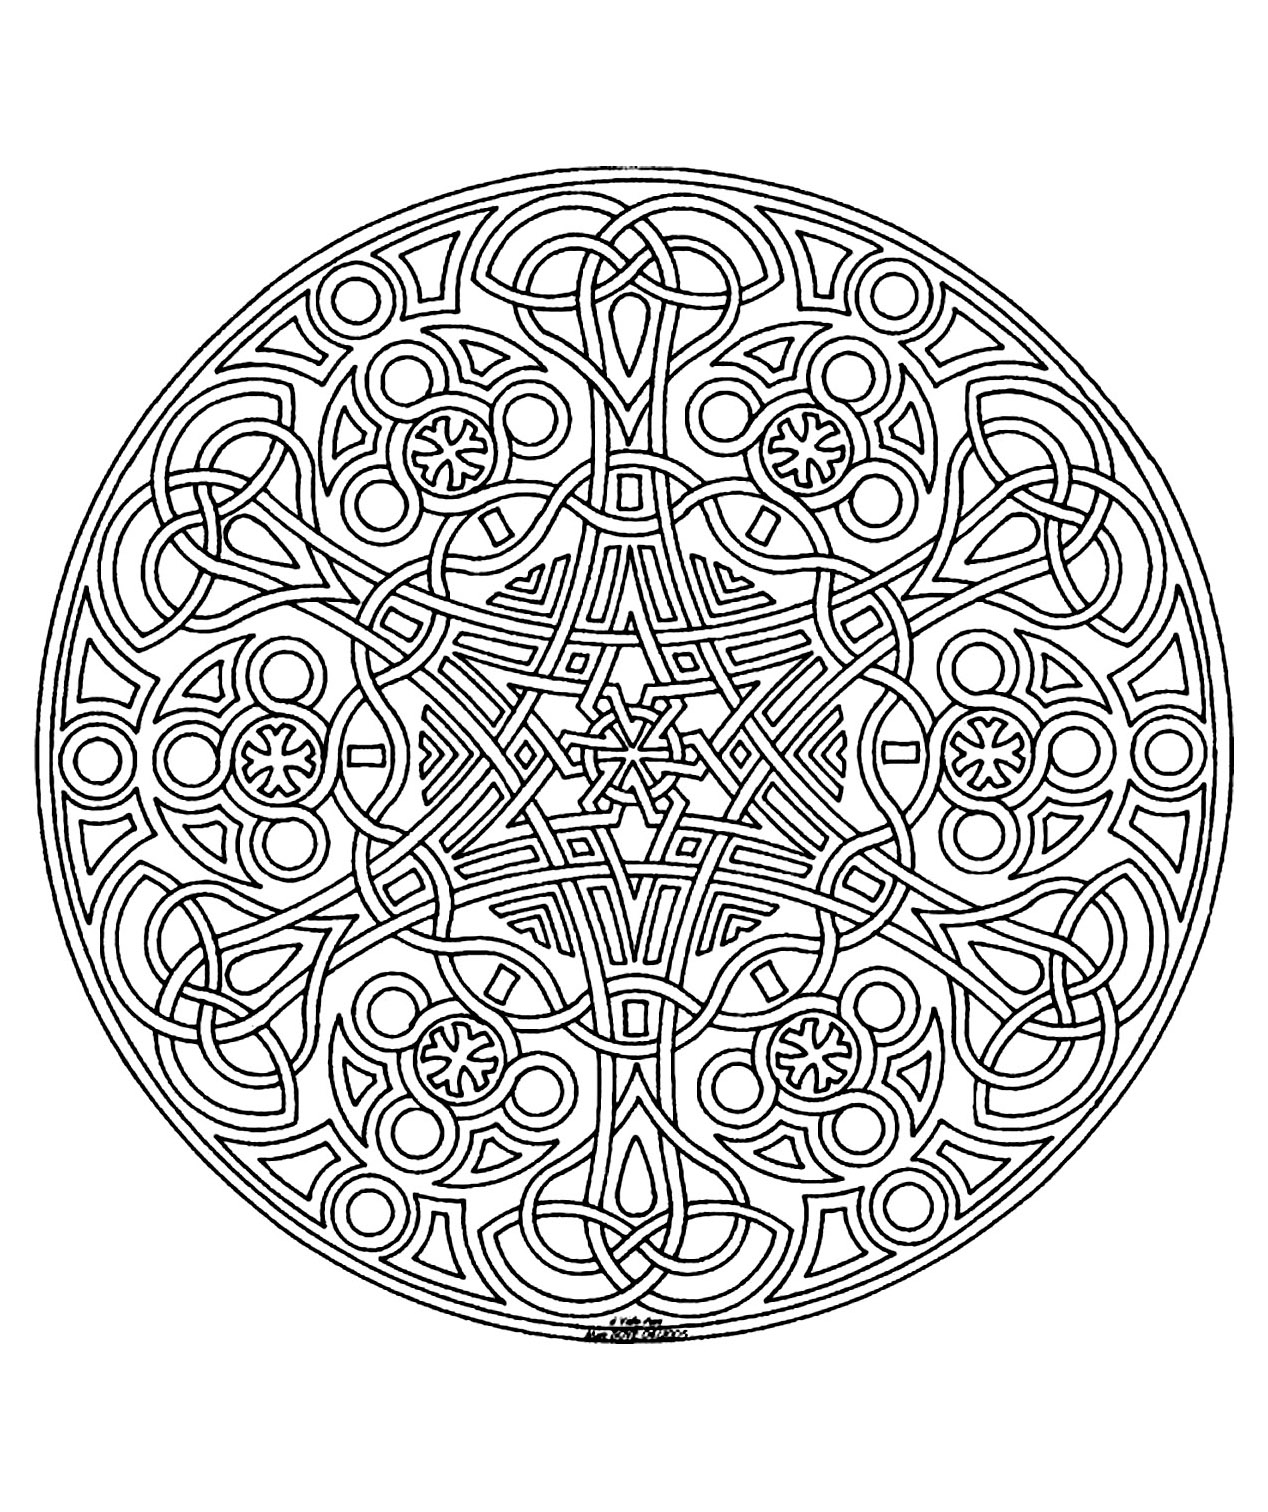 Mandala to color difficult 8 - Difficult Mandalas (for adults) - 100 ...